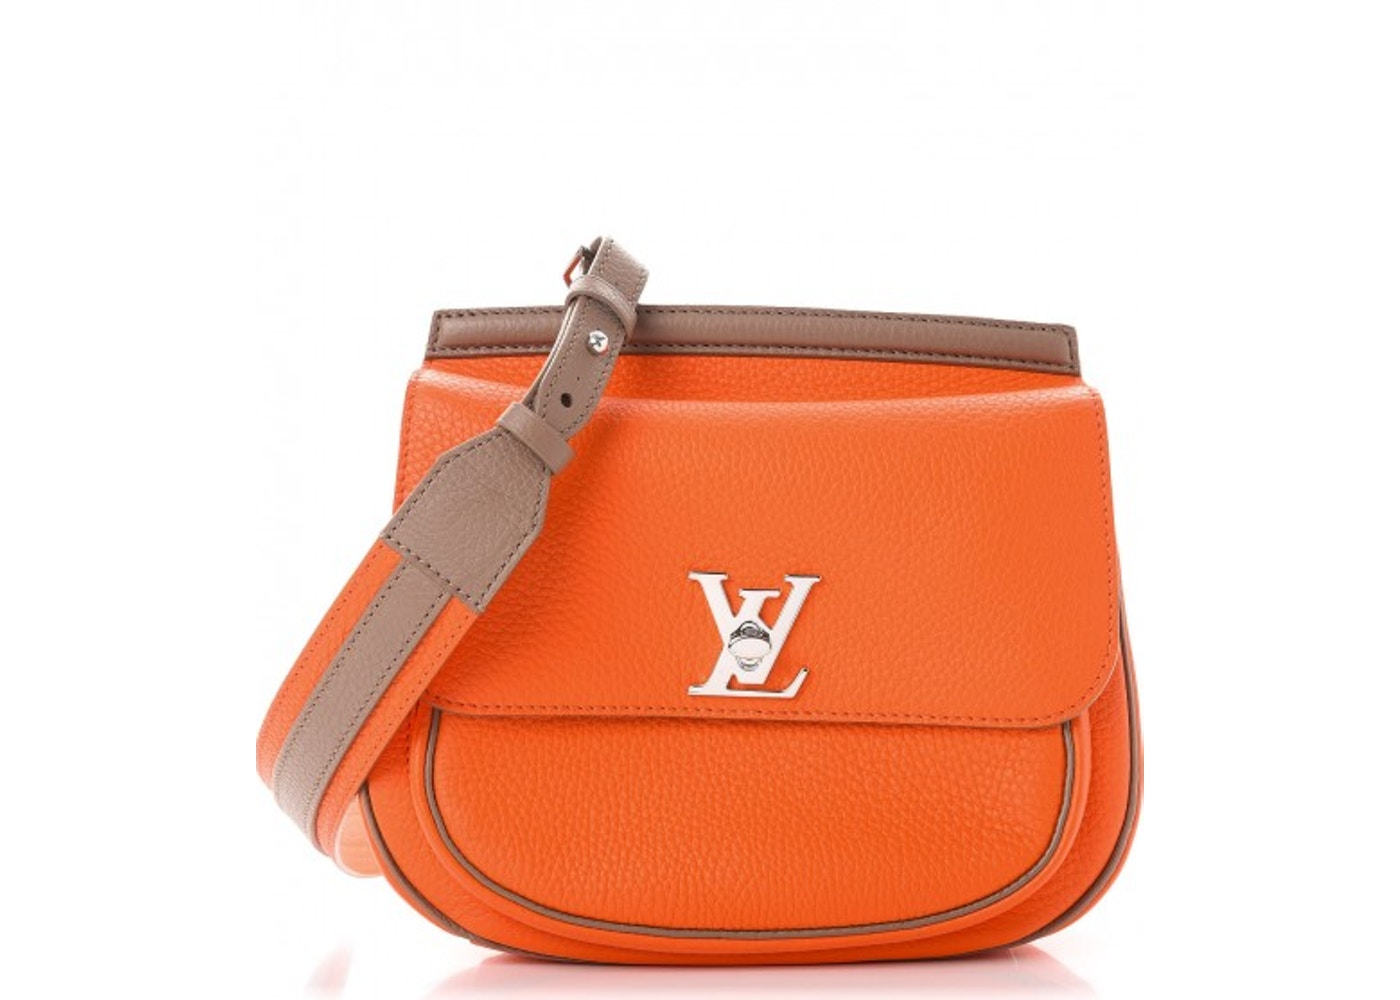 deacc2468a68 Louis Vuitton Crossbody Marceau Taurillon With Accessories Tangerine Taupe.  Taurillon With Accessories Tangerine Taupe